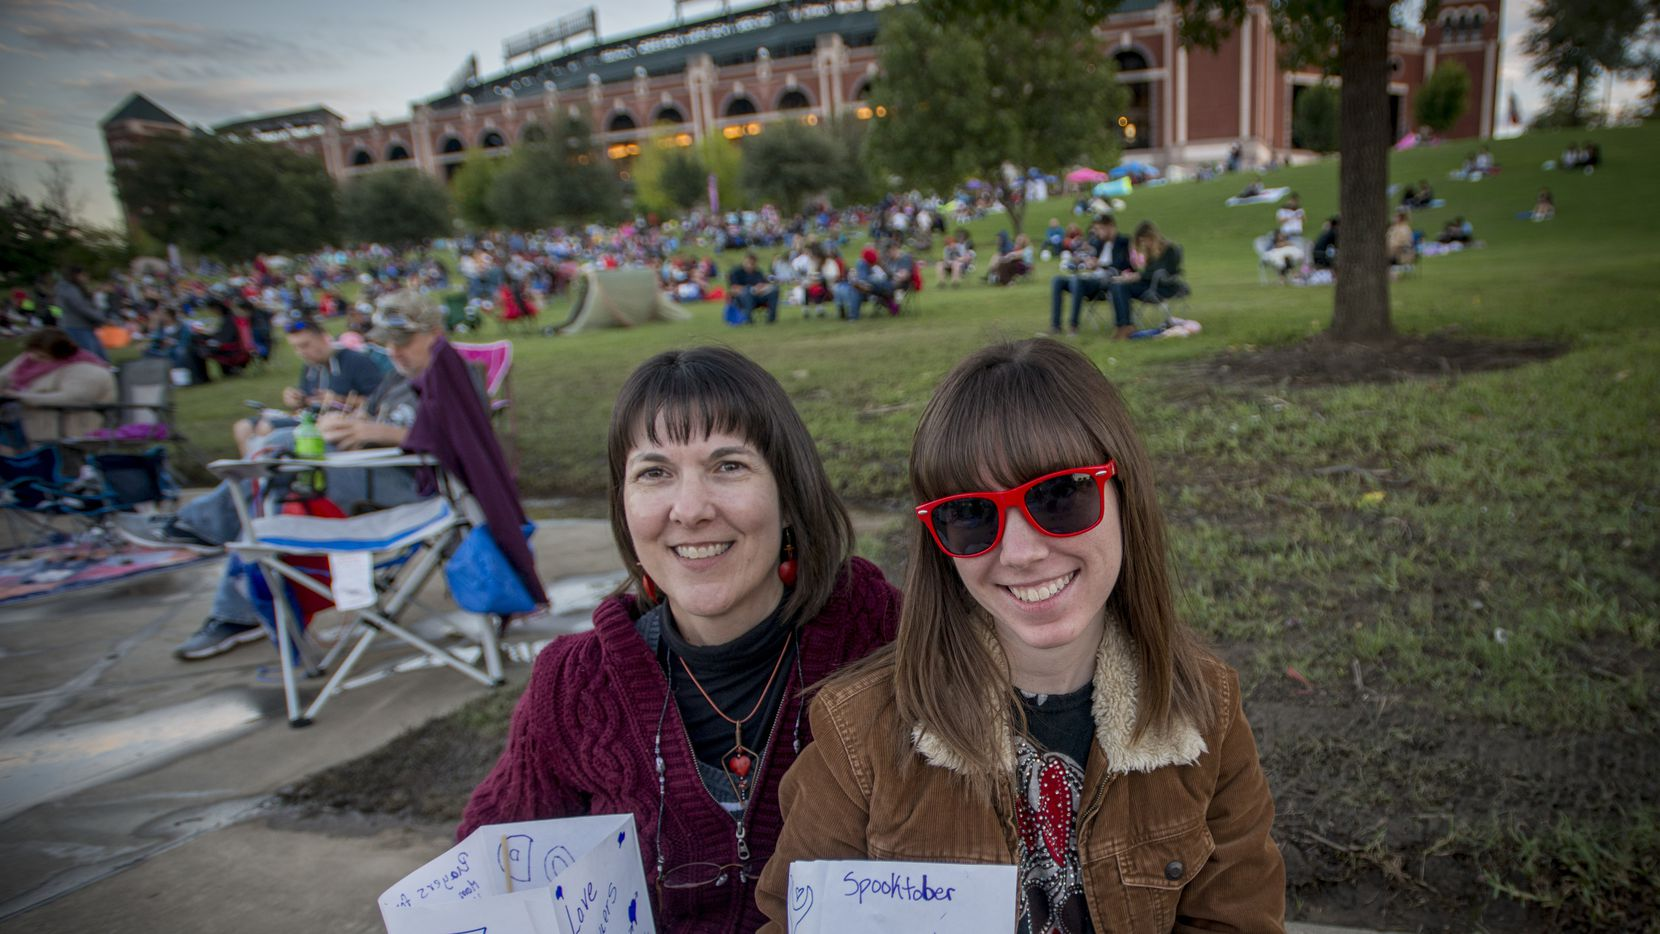 Tracie Matthews, left, and daughter Jordan Matthews with the water lanterns they prepared for the Water Lantern Festival at Mark Holz Lake at Globe Life Park in Arlington, Texas on October 20, 2018. (Robert W. Hart/Special Contributor)